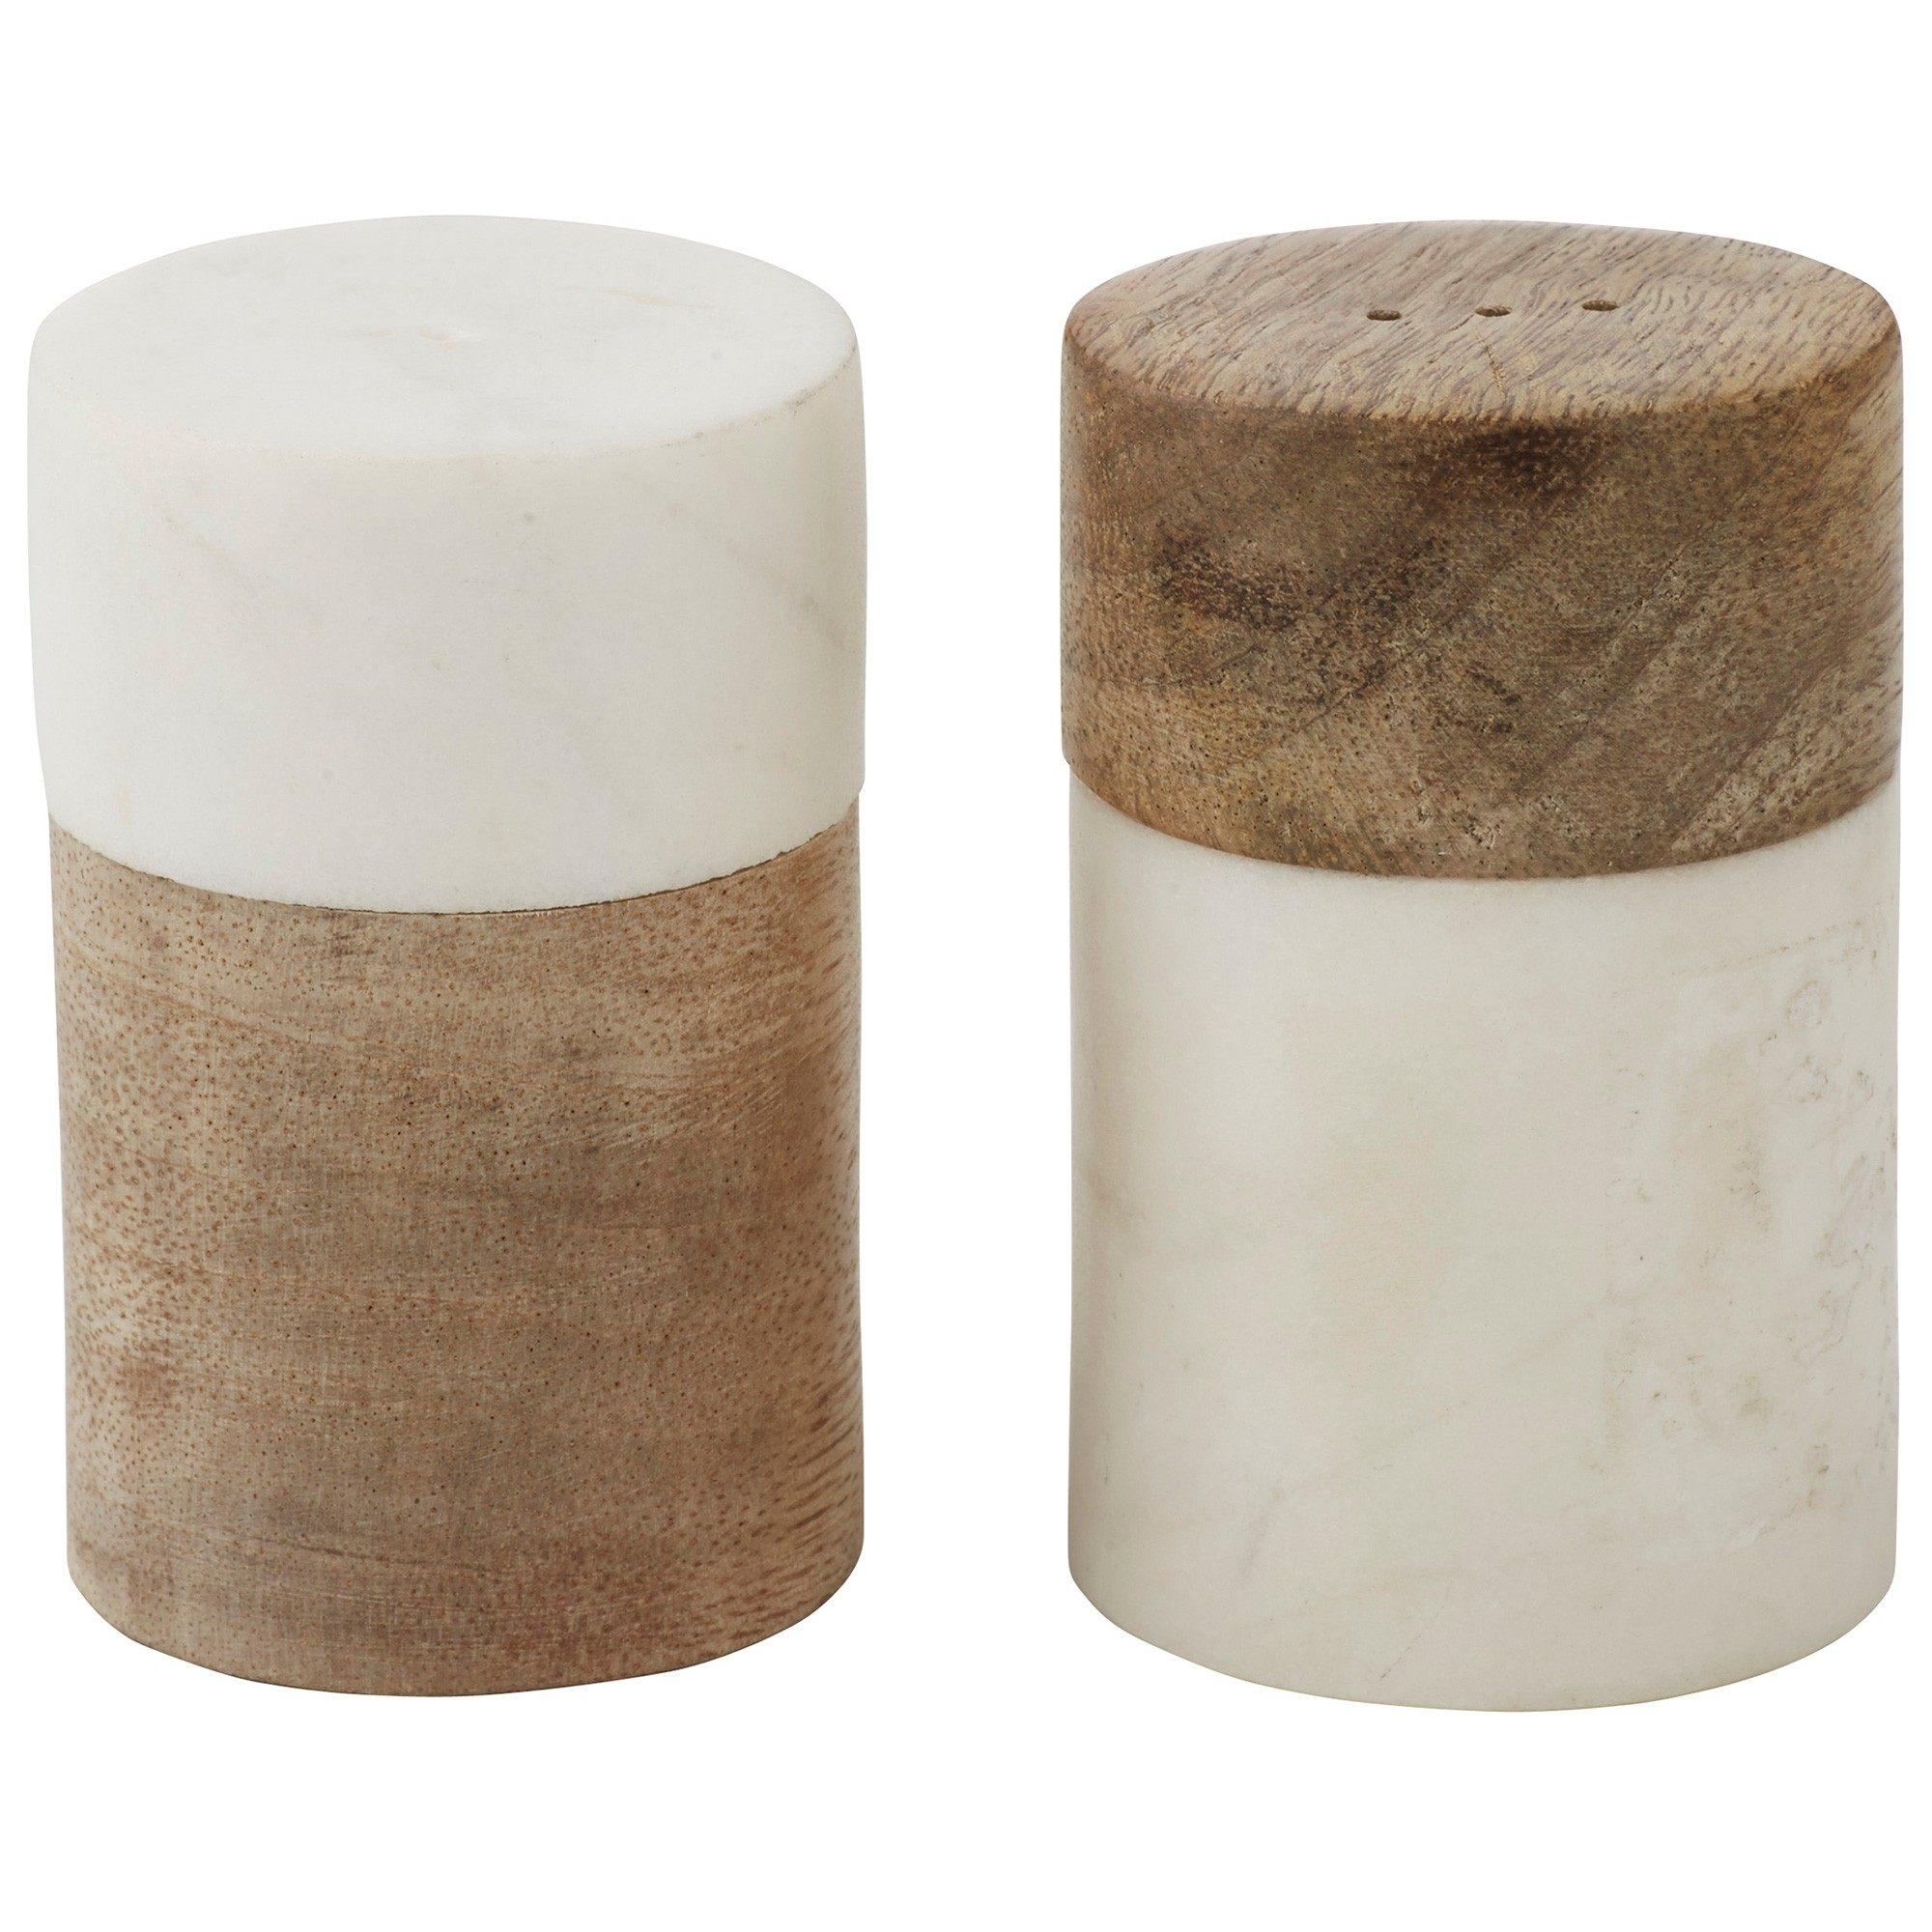 Eliot 2 Piece Marble & Mango Wood Salt & Pepper Shaker Set